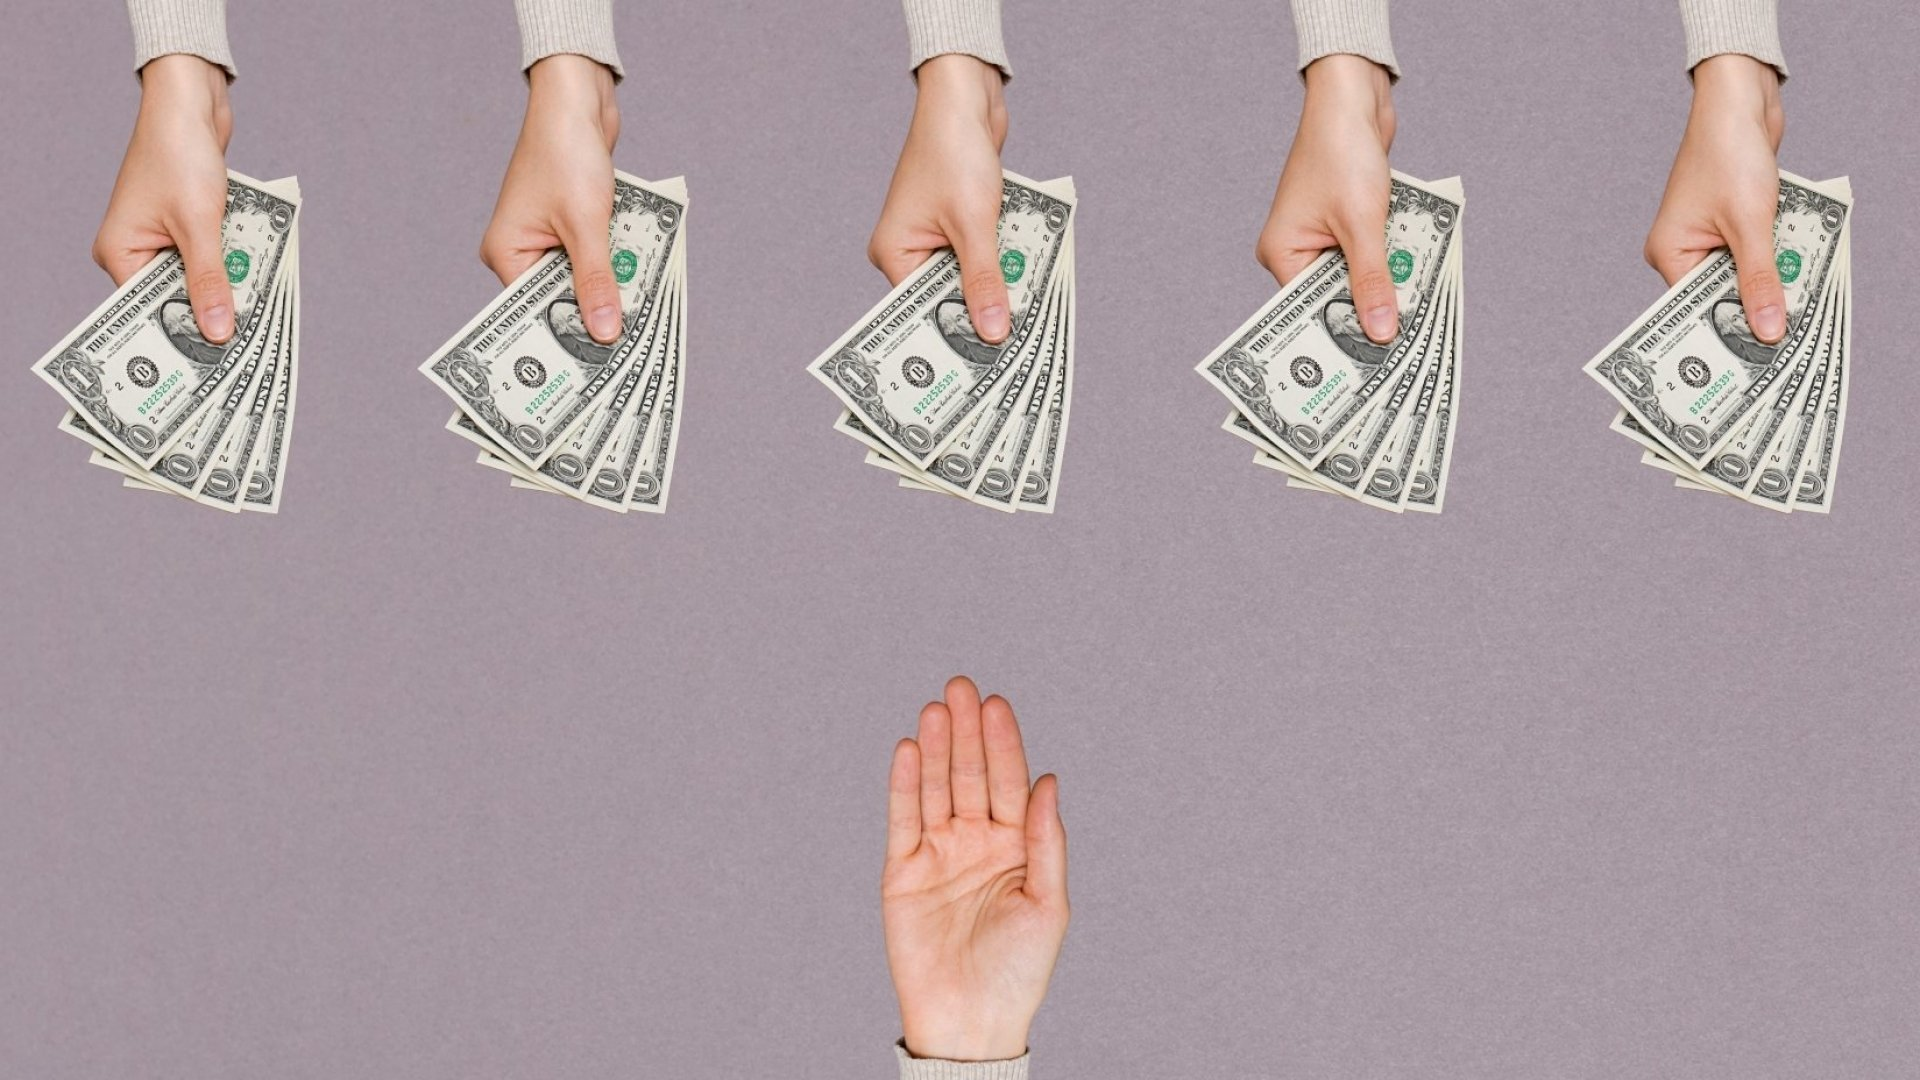 6 Common Fundraising Mistakes Every Founder Must Avoid